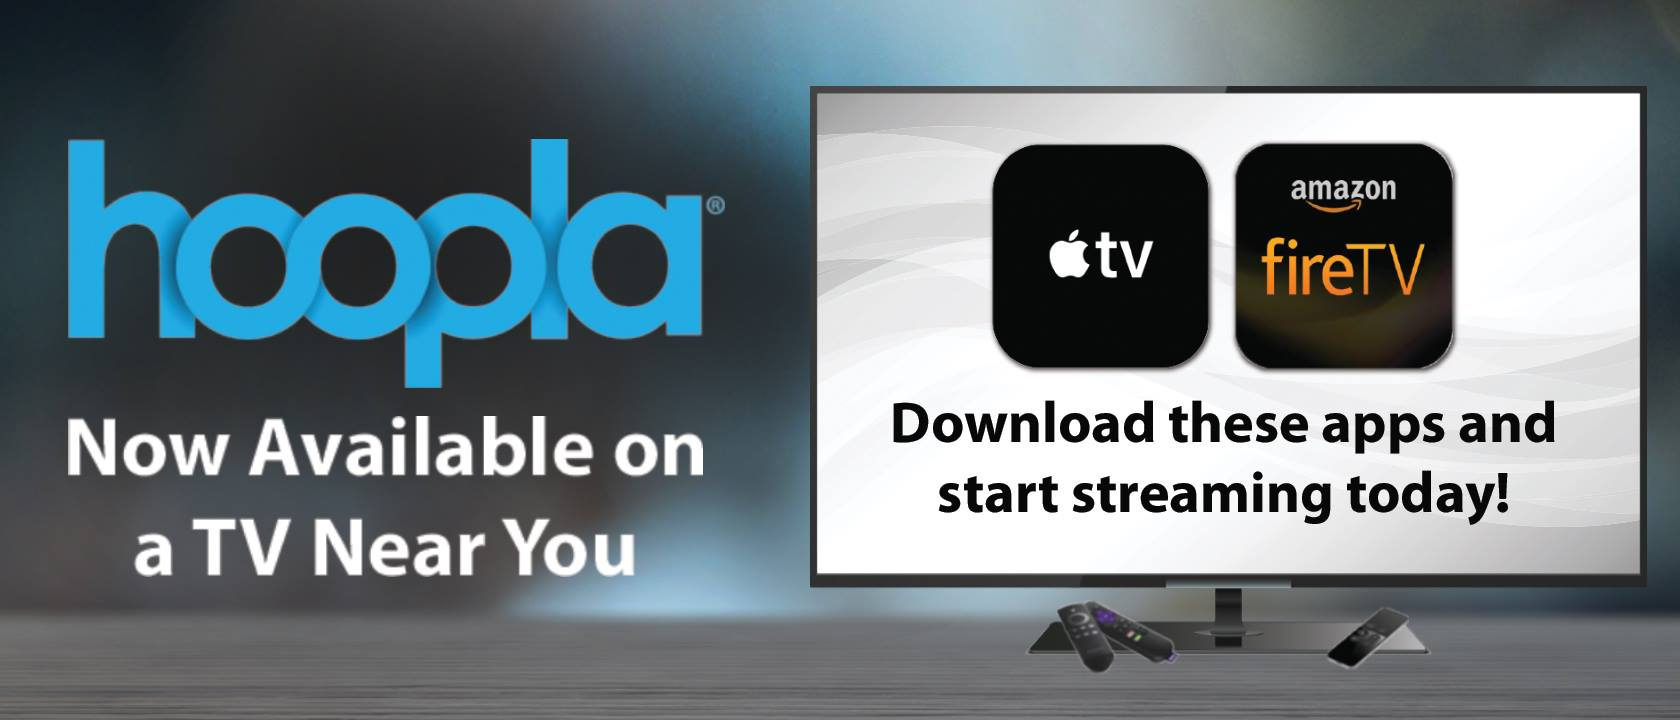 hoopla digital, streaming, apple tv, amazon fire tv